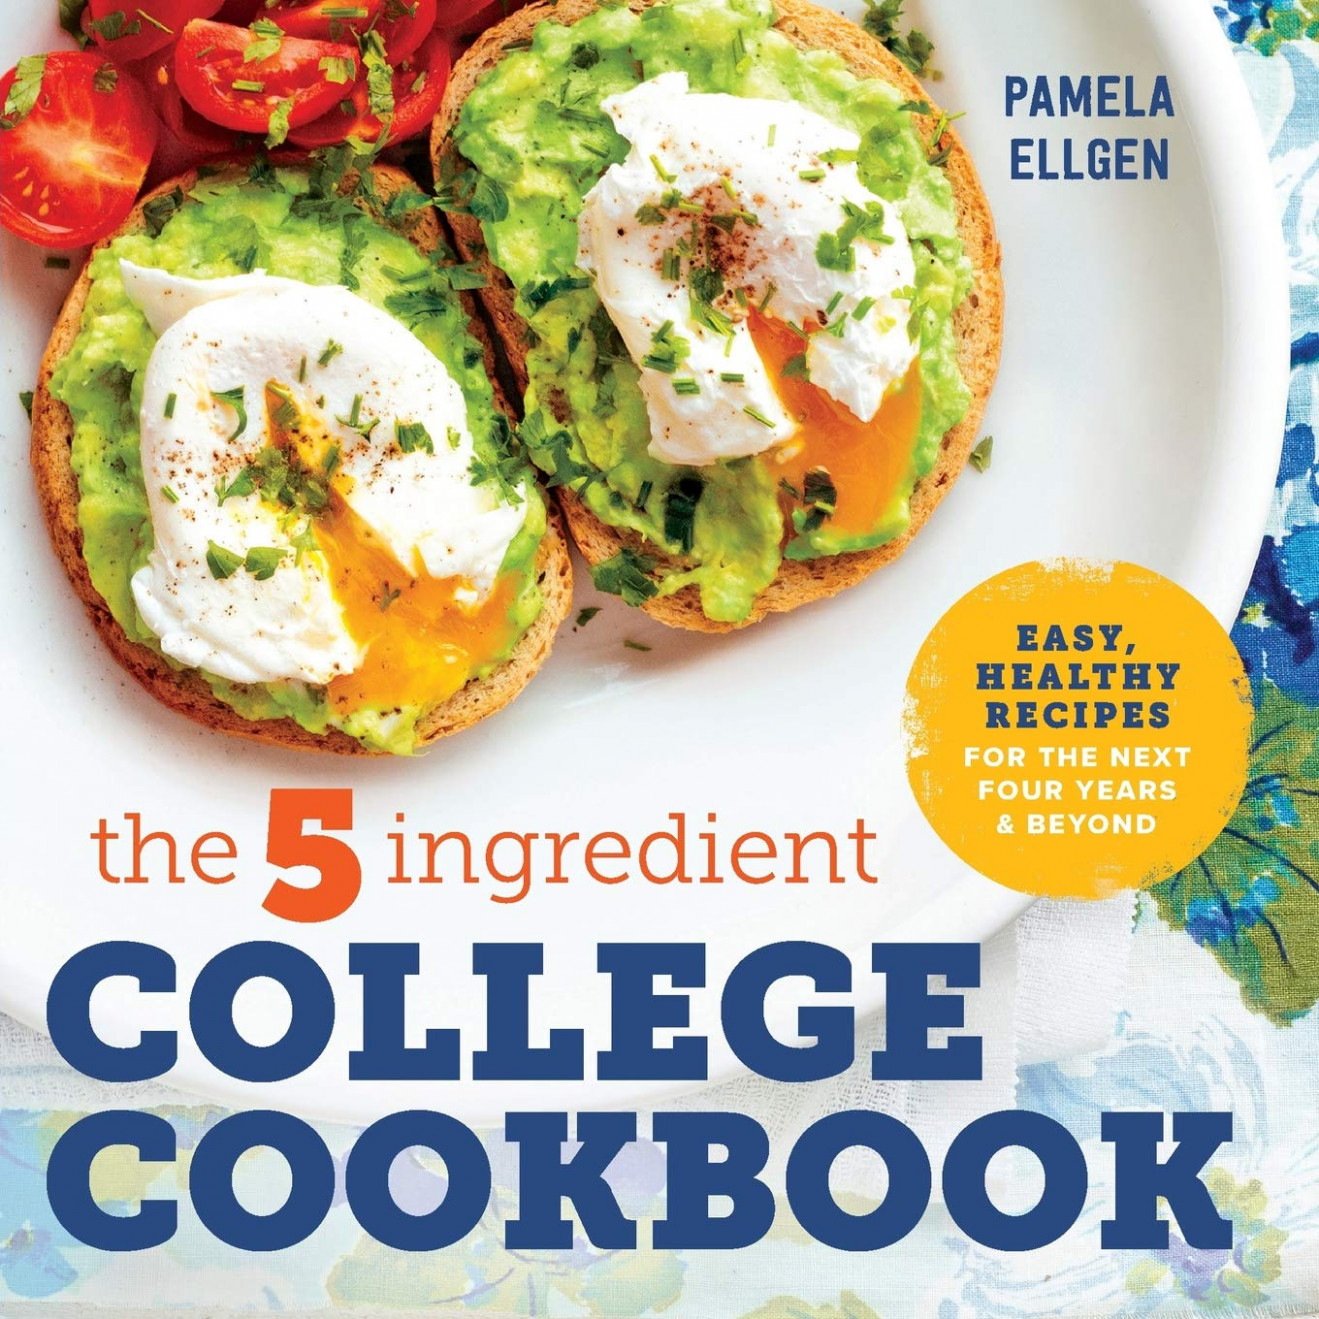 The 13-Ingredient College Cookbook: Easy, Healthy Recipes for ..